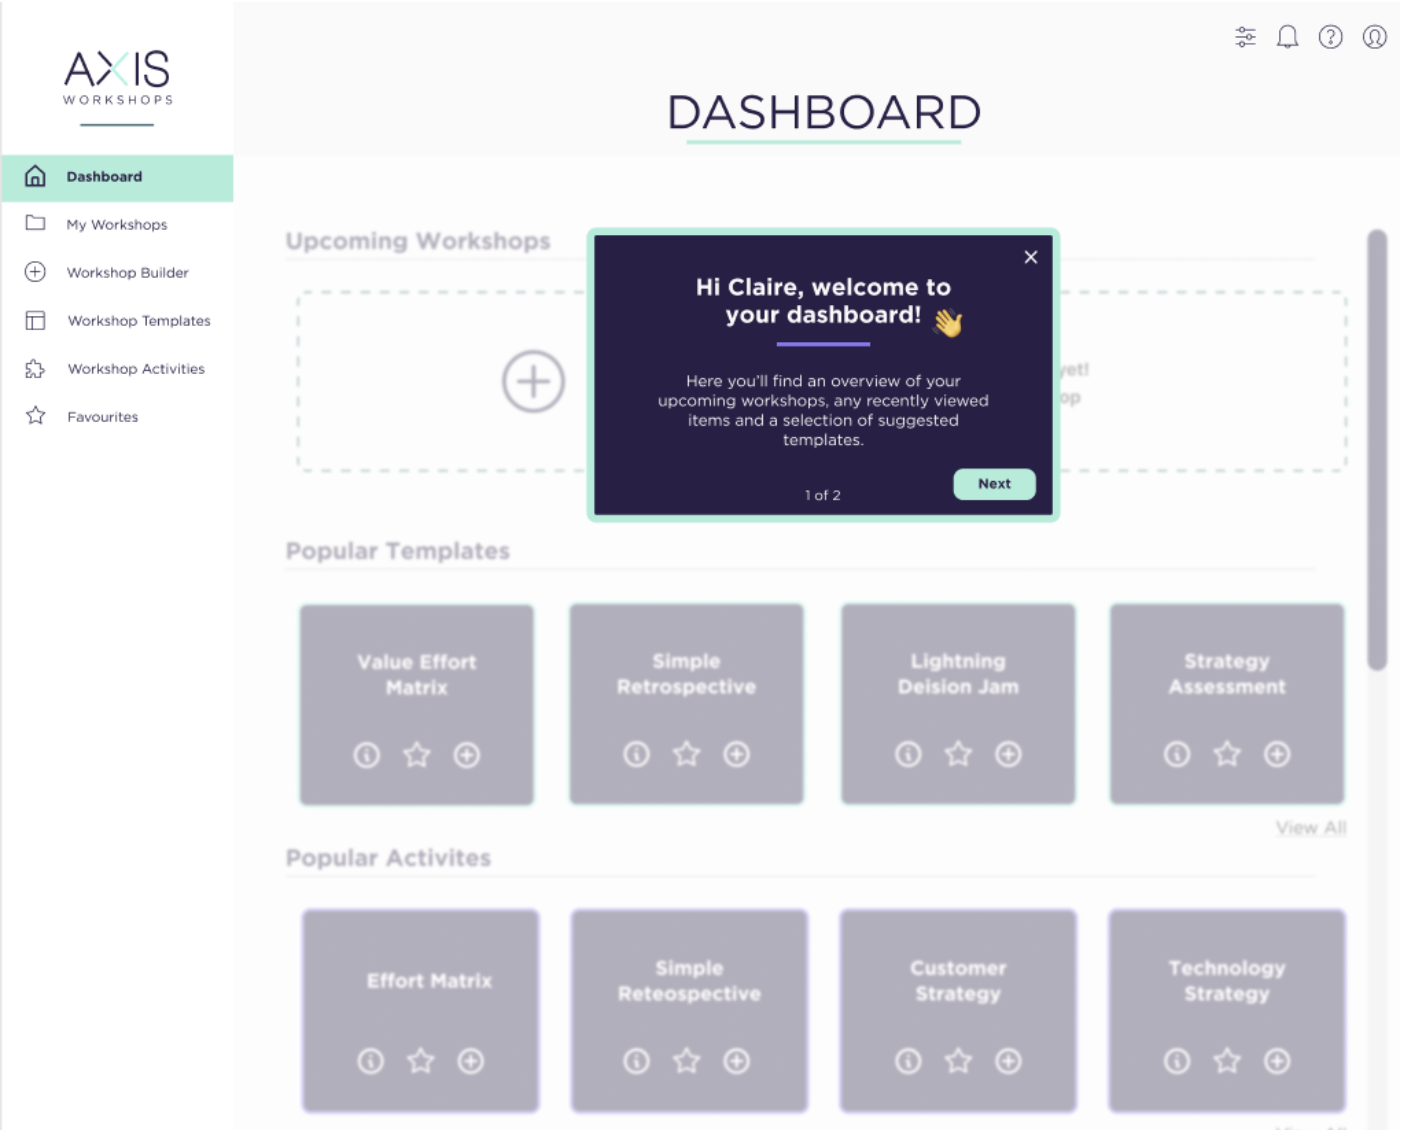 Our final design of the dashboard